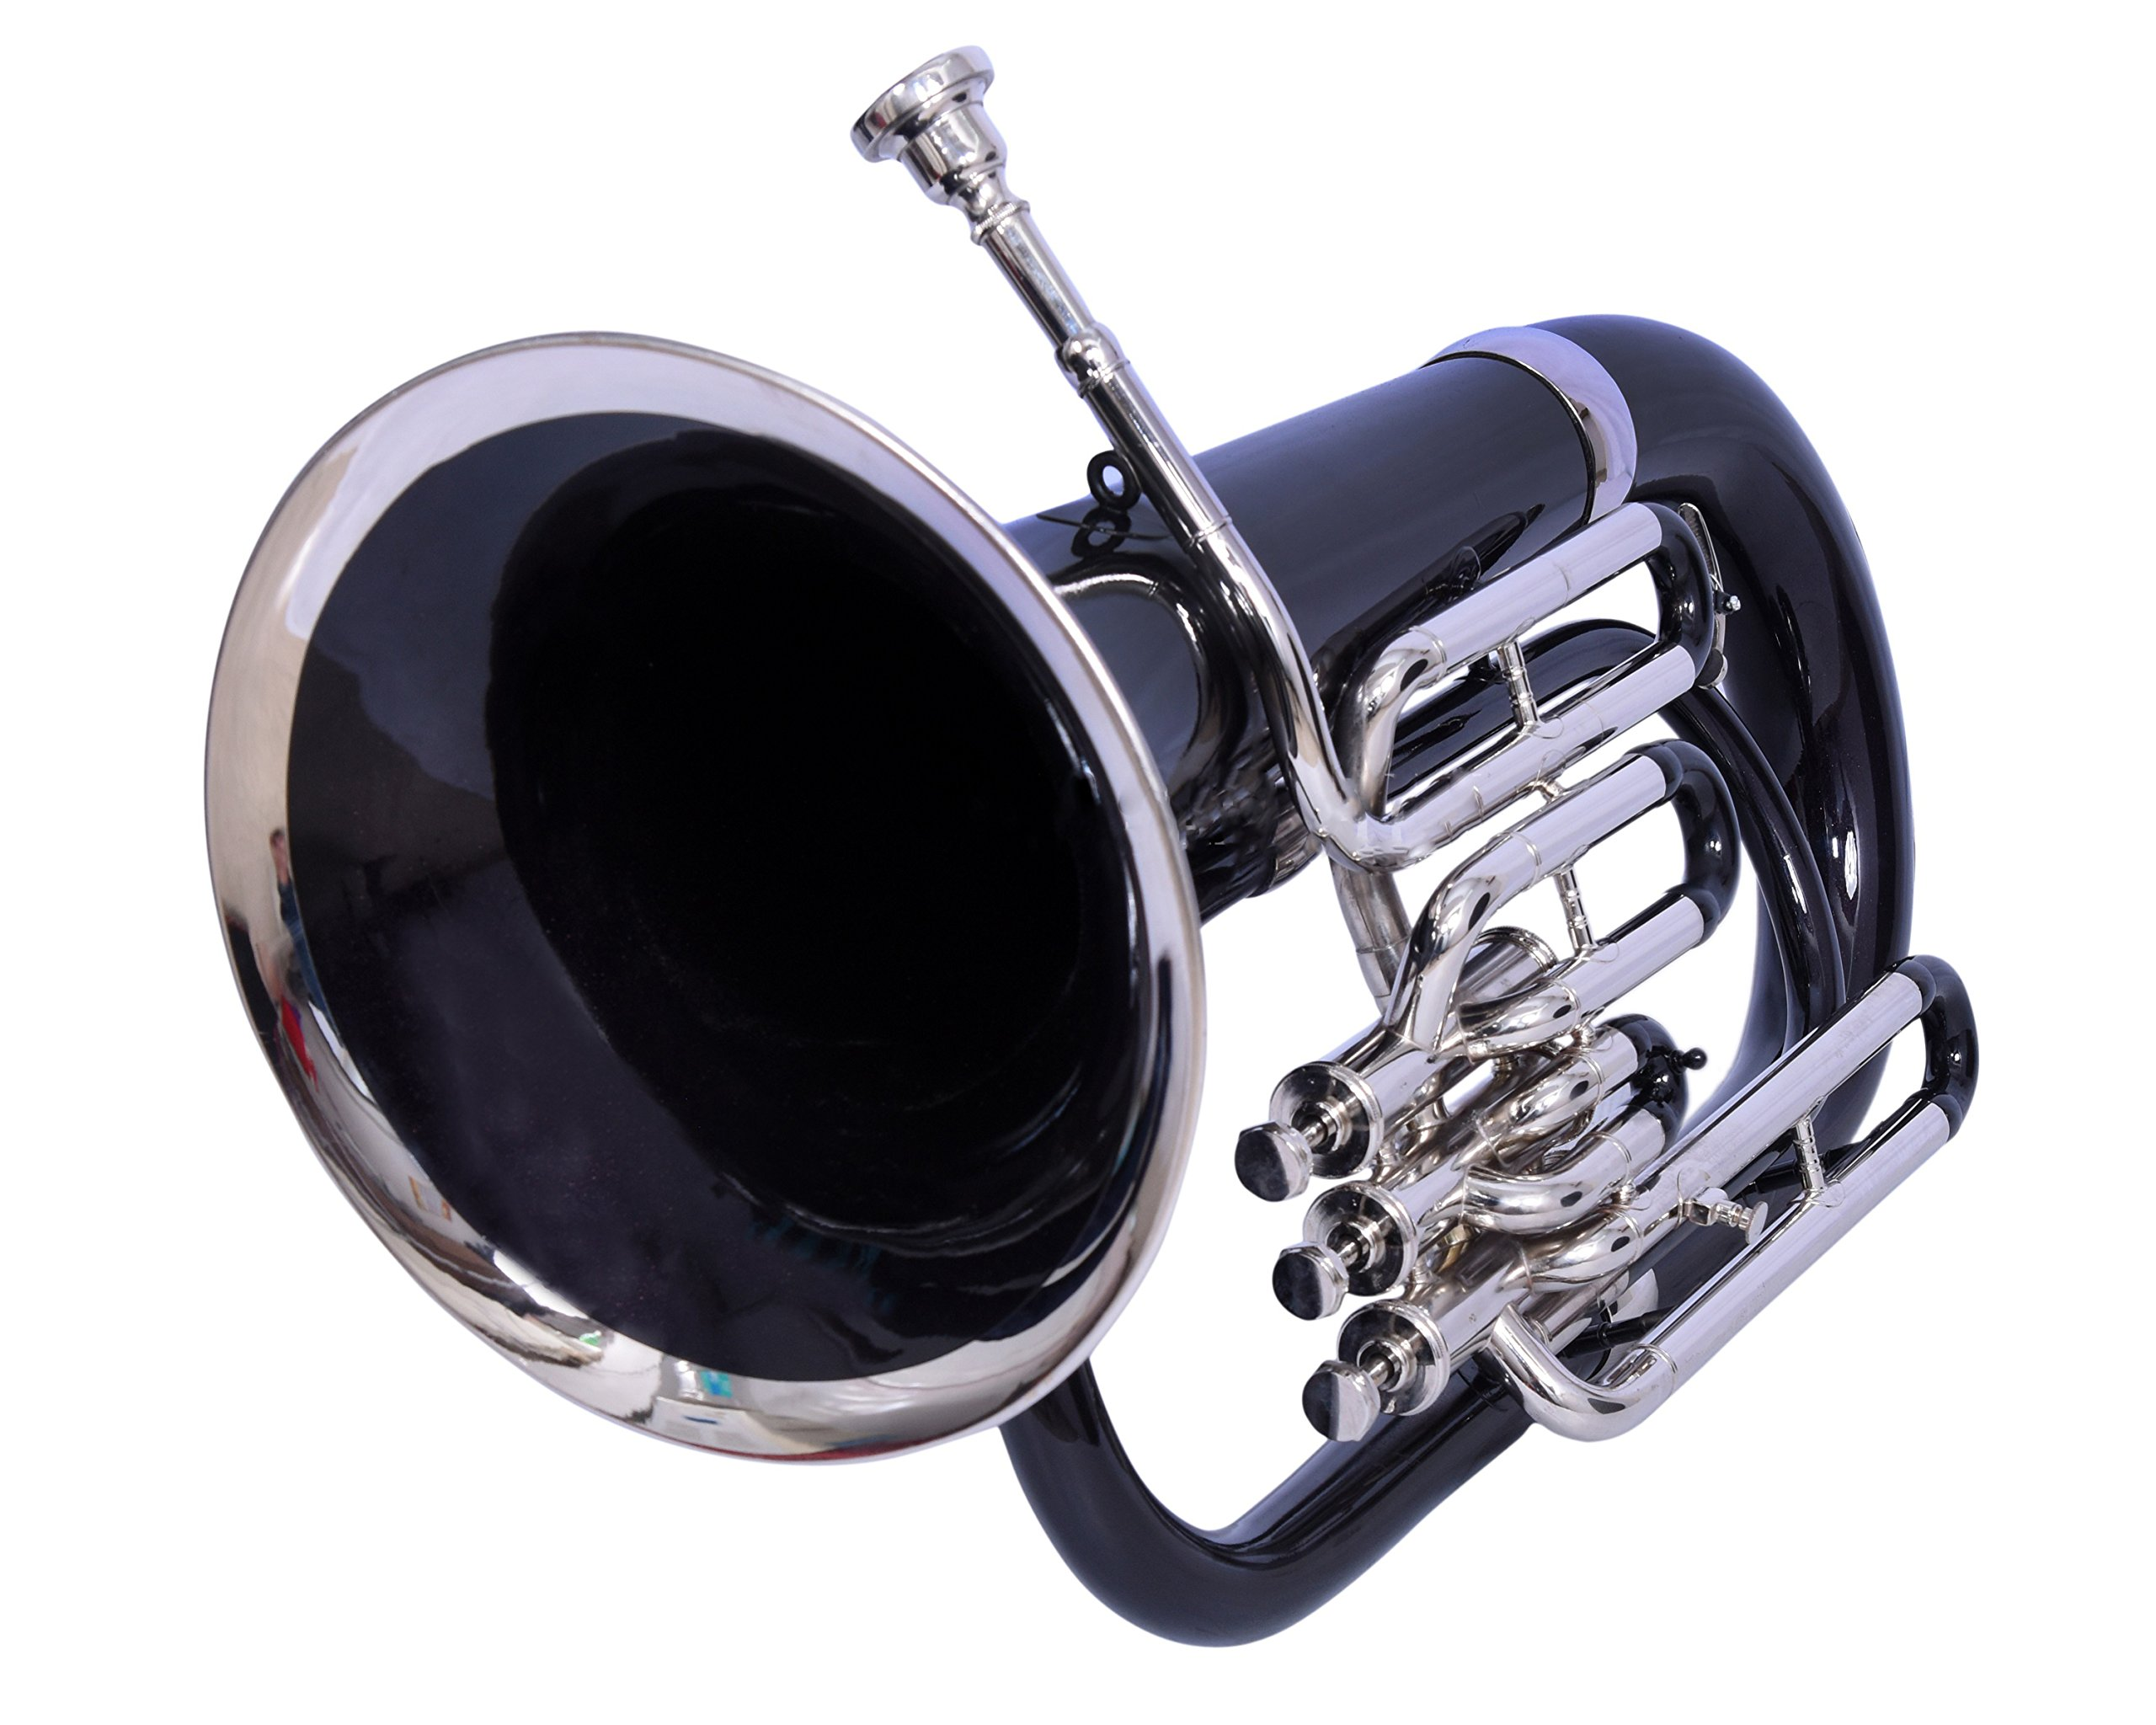 Nasir Ali Euphonium Black lacquered and Brass polished Bb 3 valve with hard case by NASIR ALI